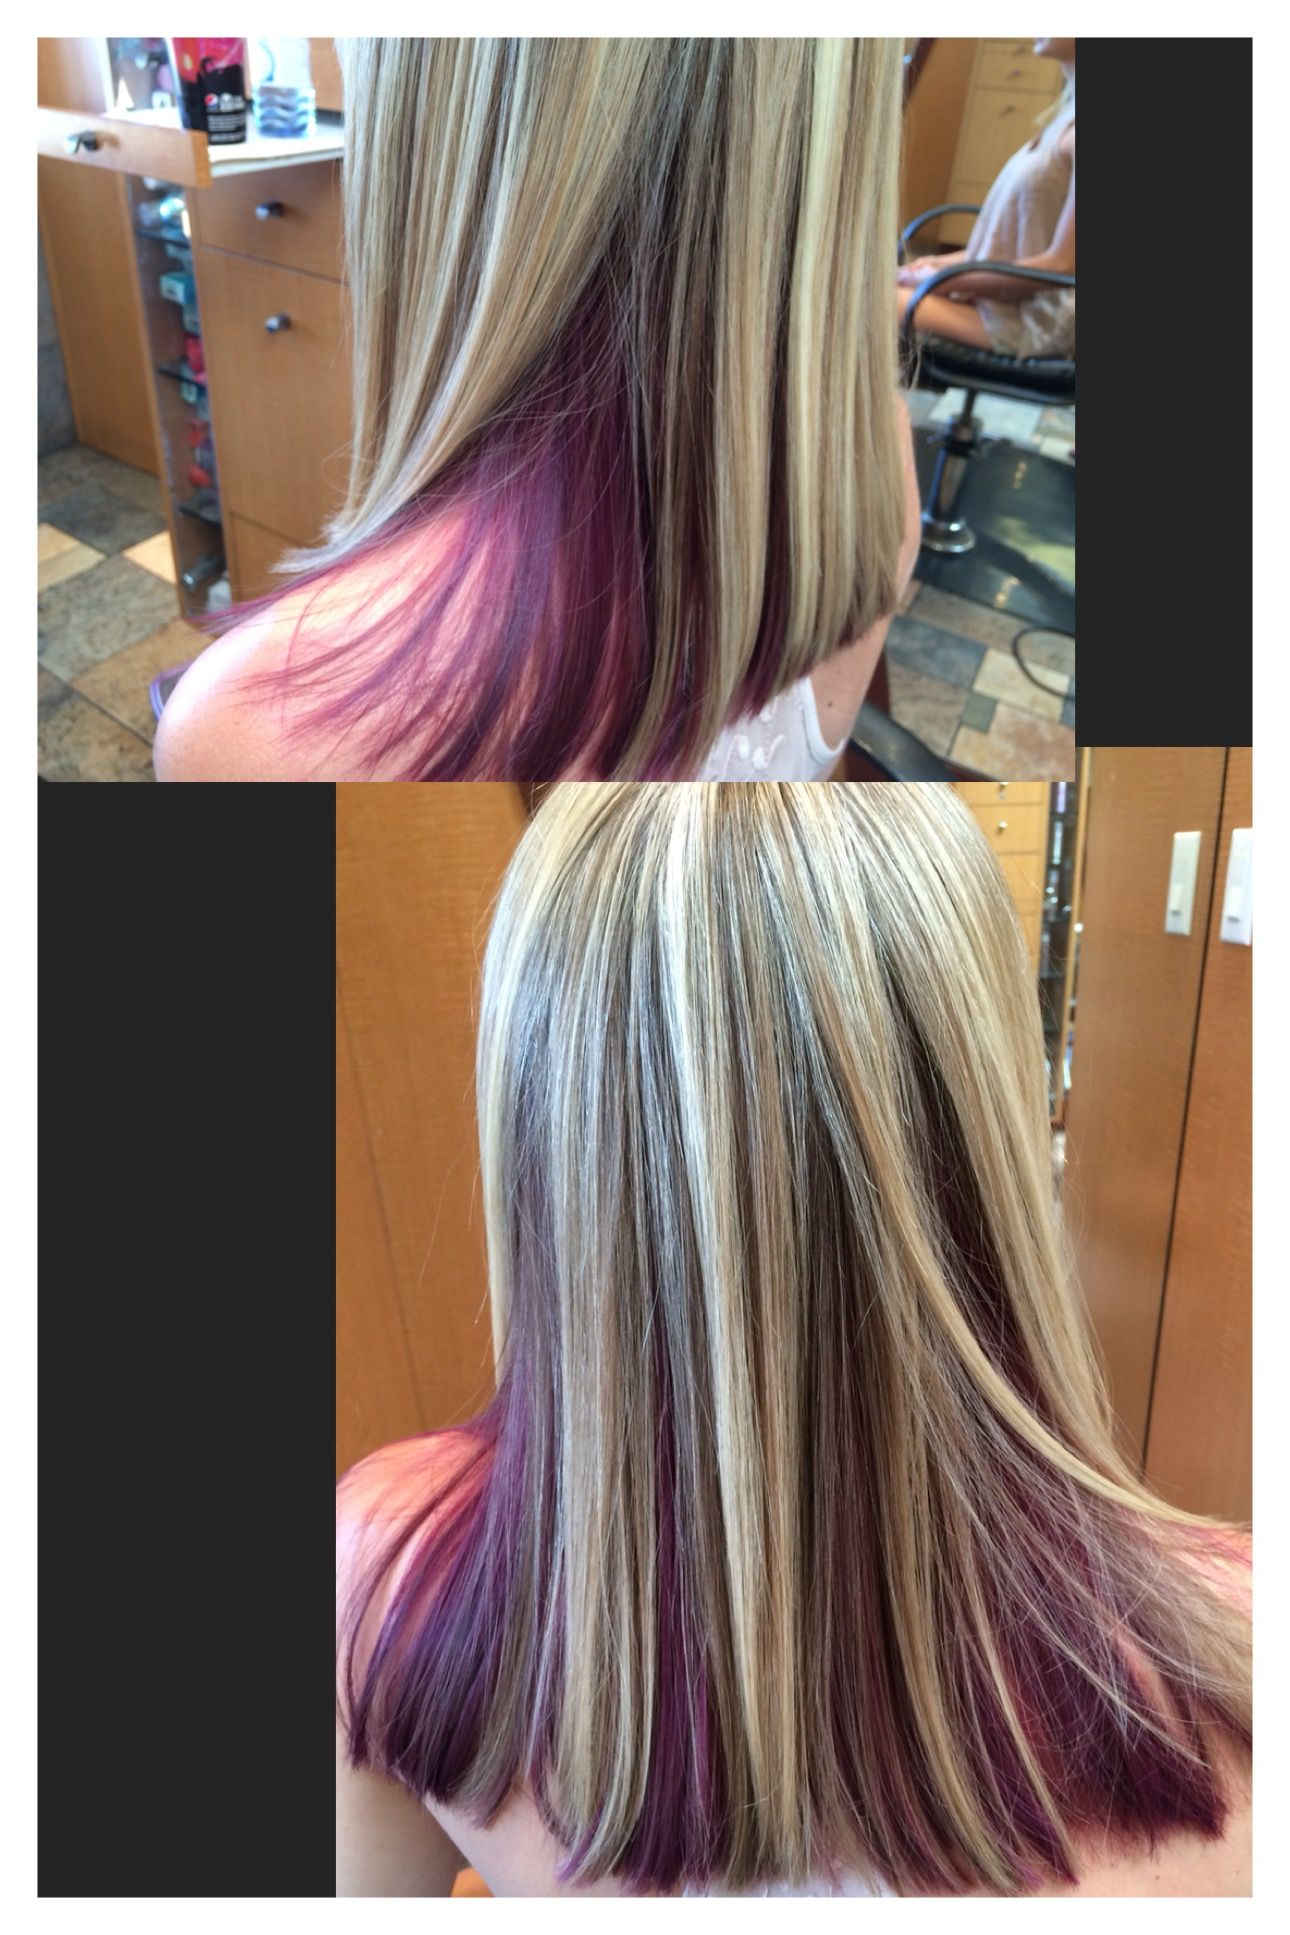 Purple hair with blonde underneath